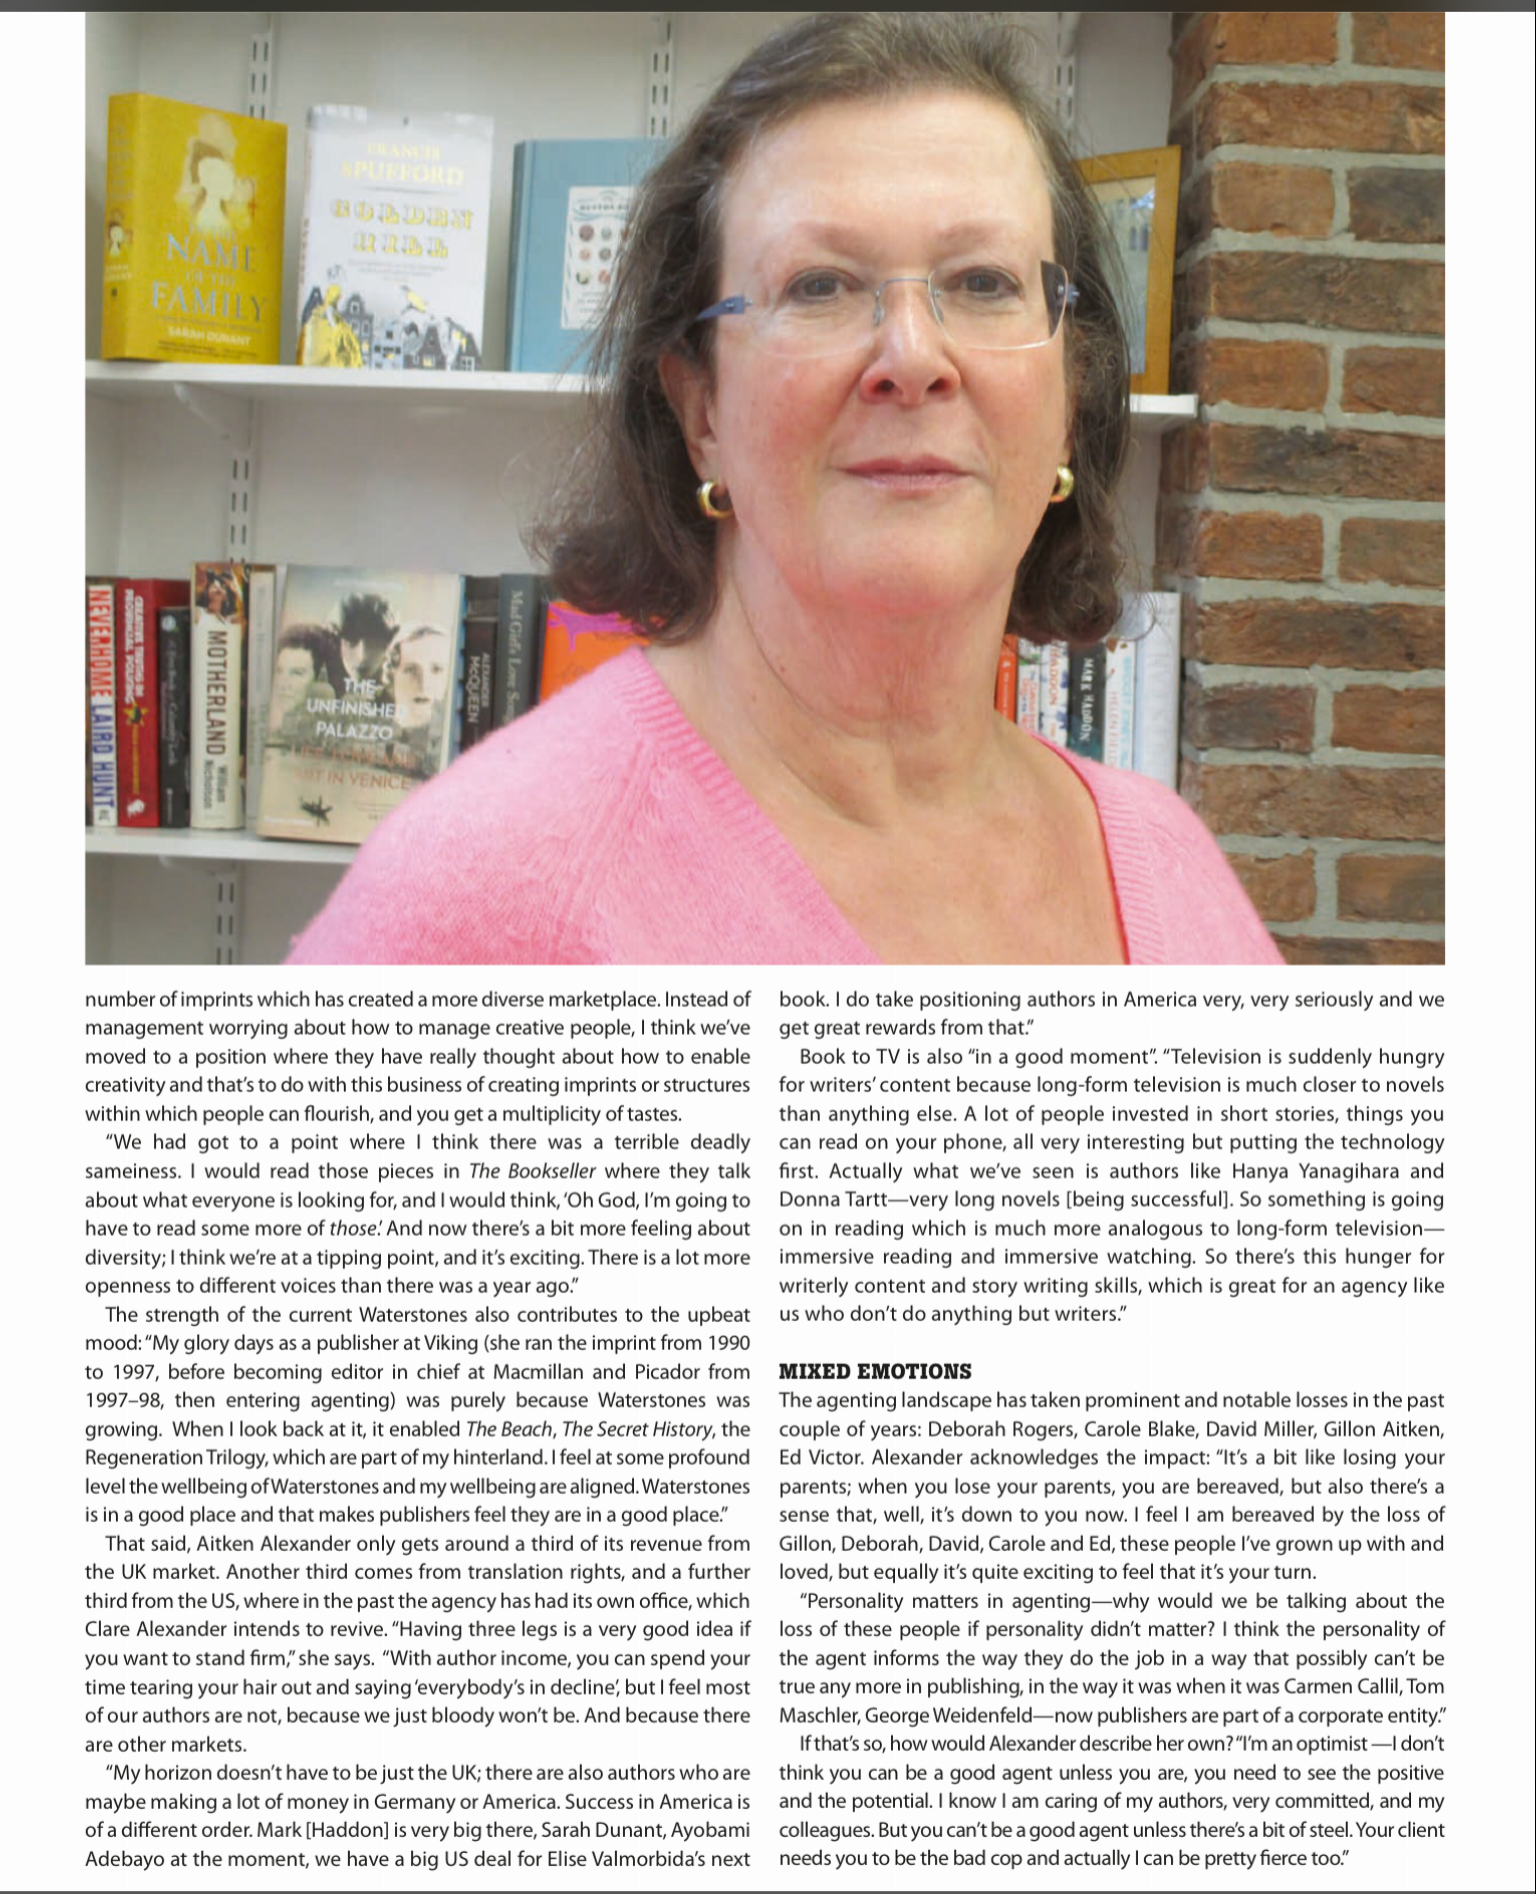 Clare Bookseller 2